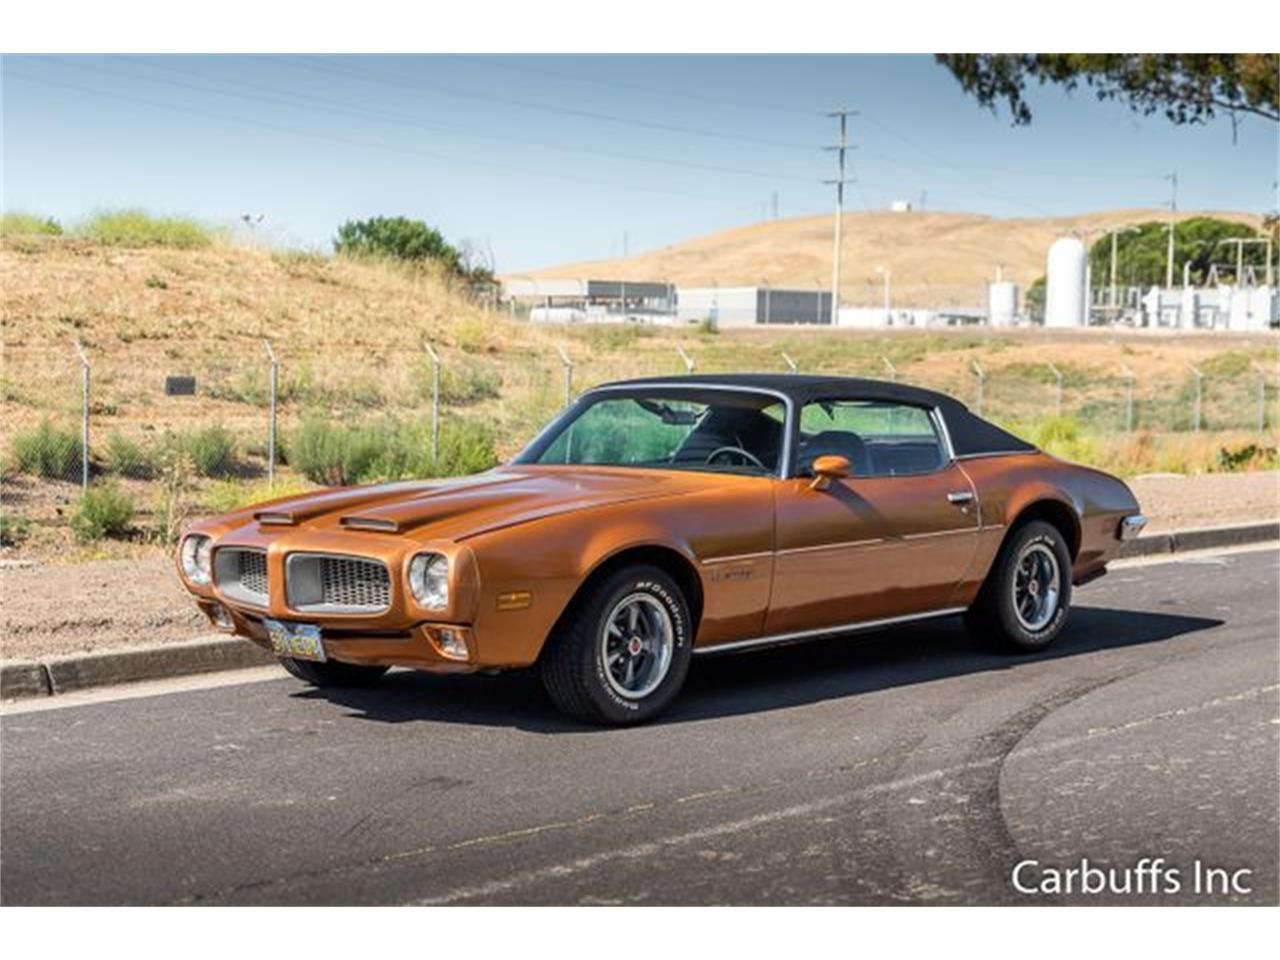 1972 Pontiac Firebird (CC-1249014) for sale in Concord, California